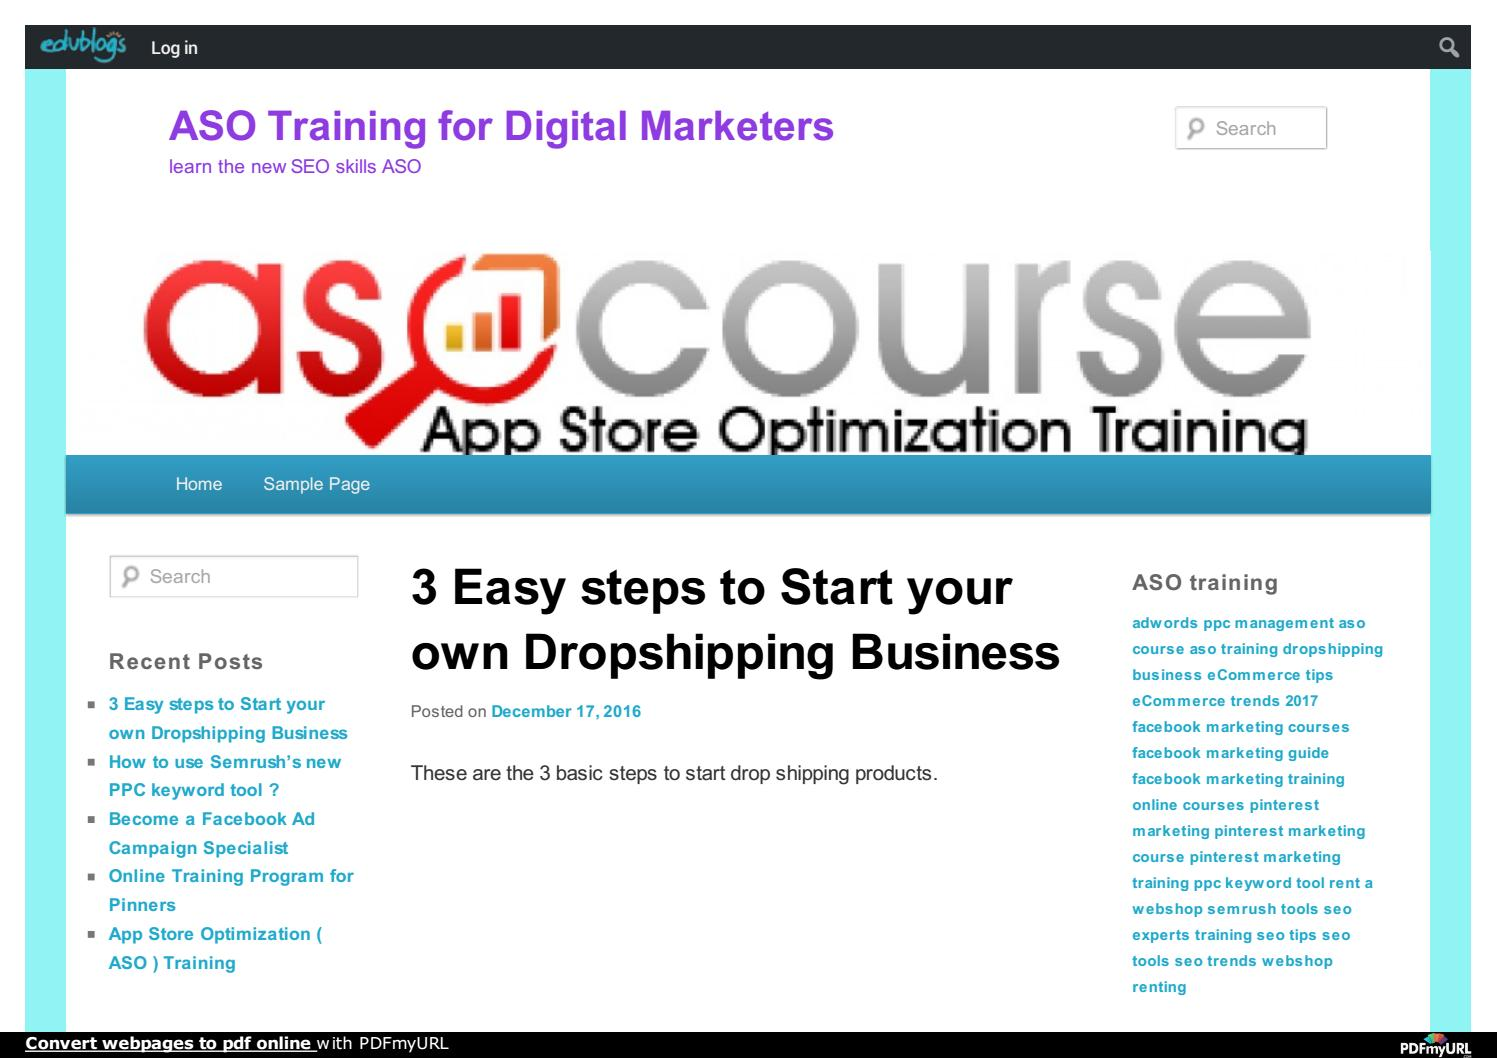 dropshipping business guide 2017 pdf by zsolt p sztor issuu rh issuu com Social Networking Users 2017 Twitter Users 2017